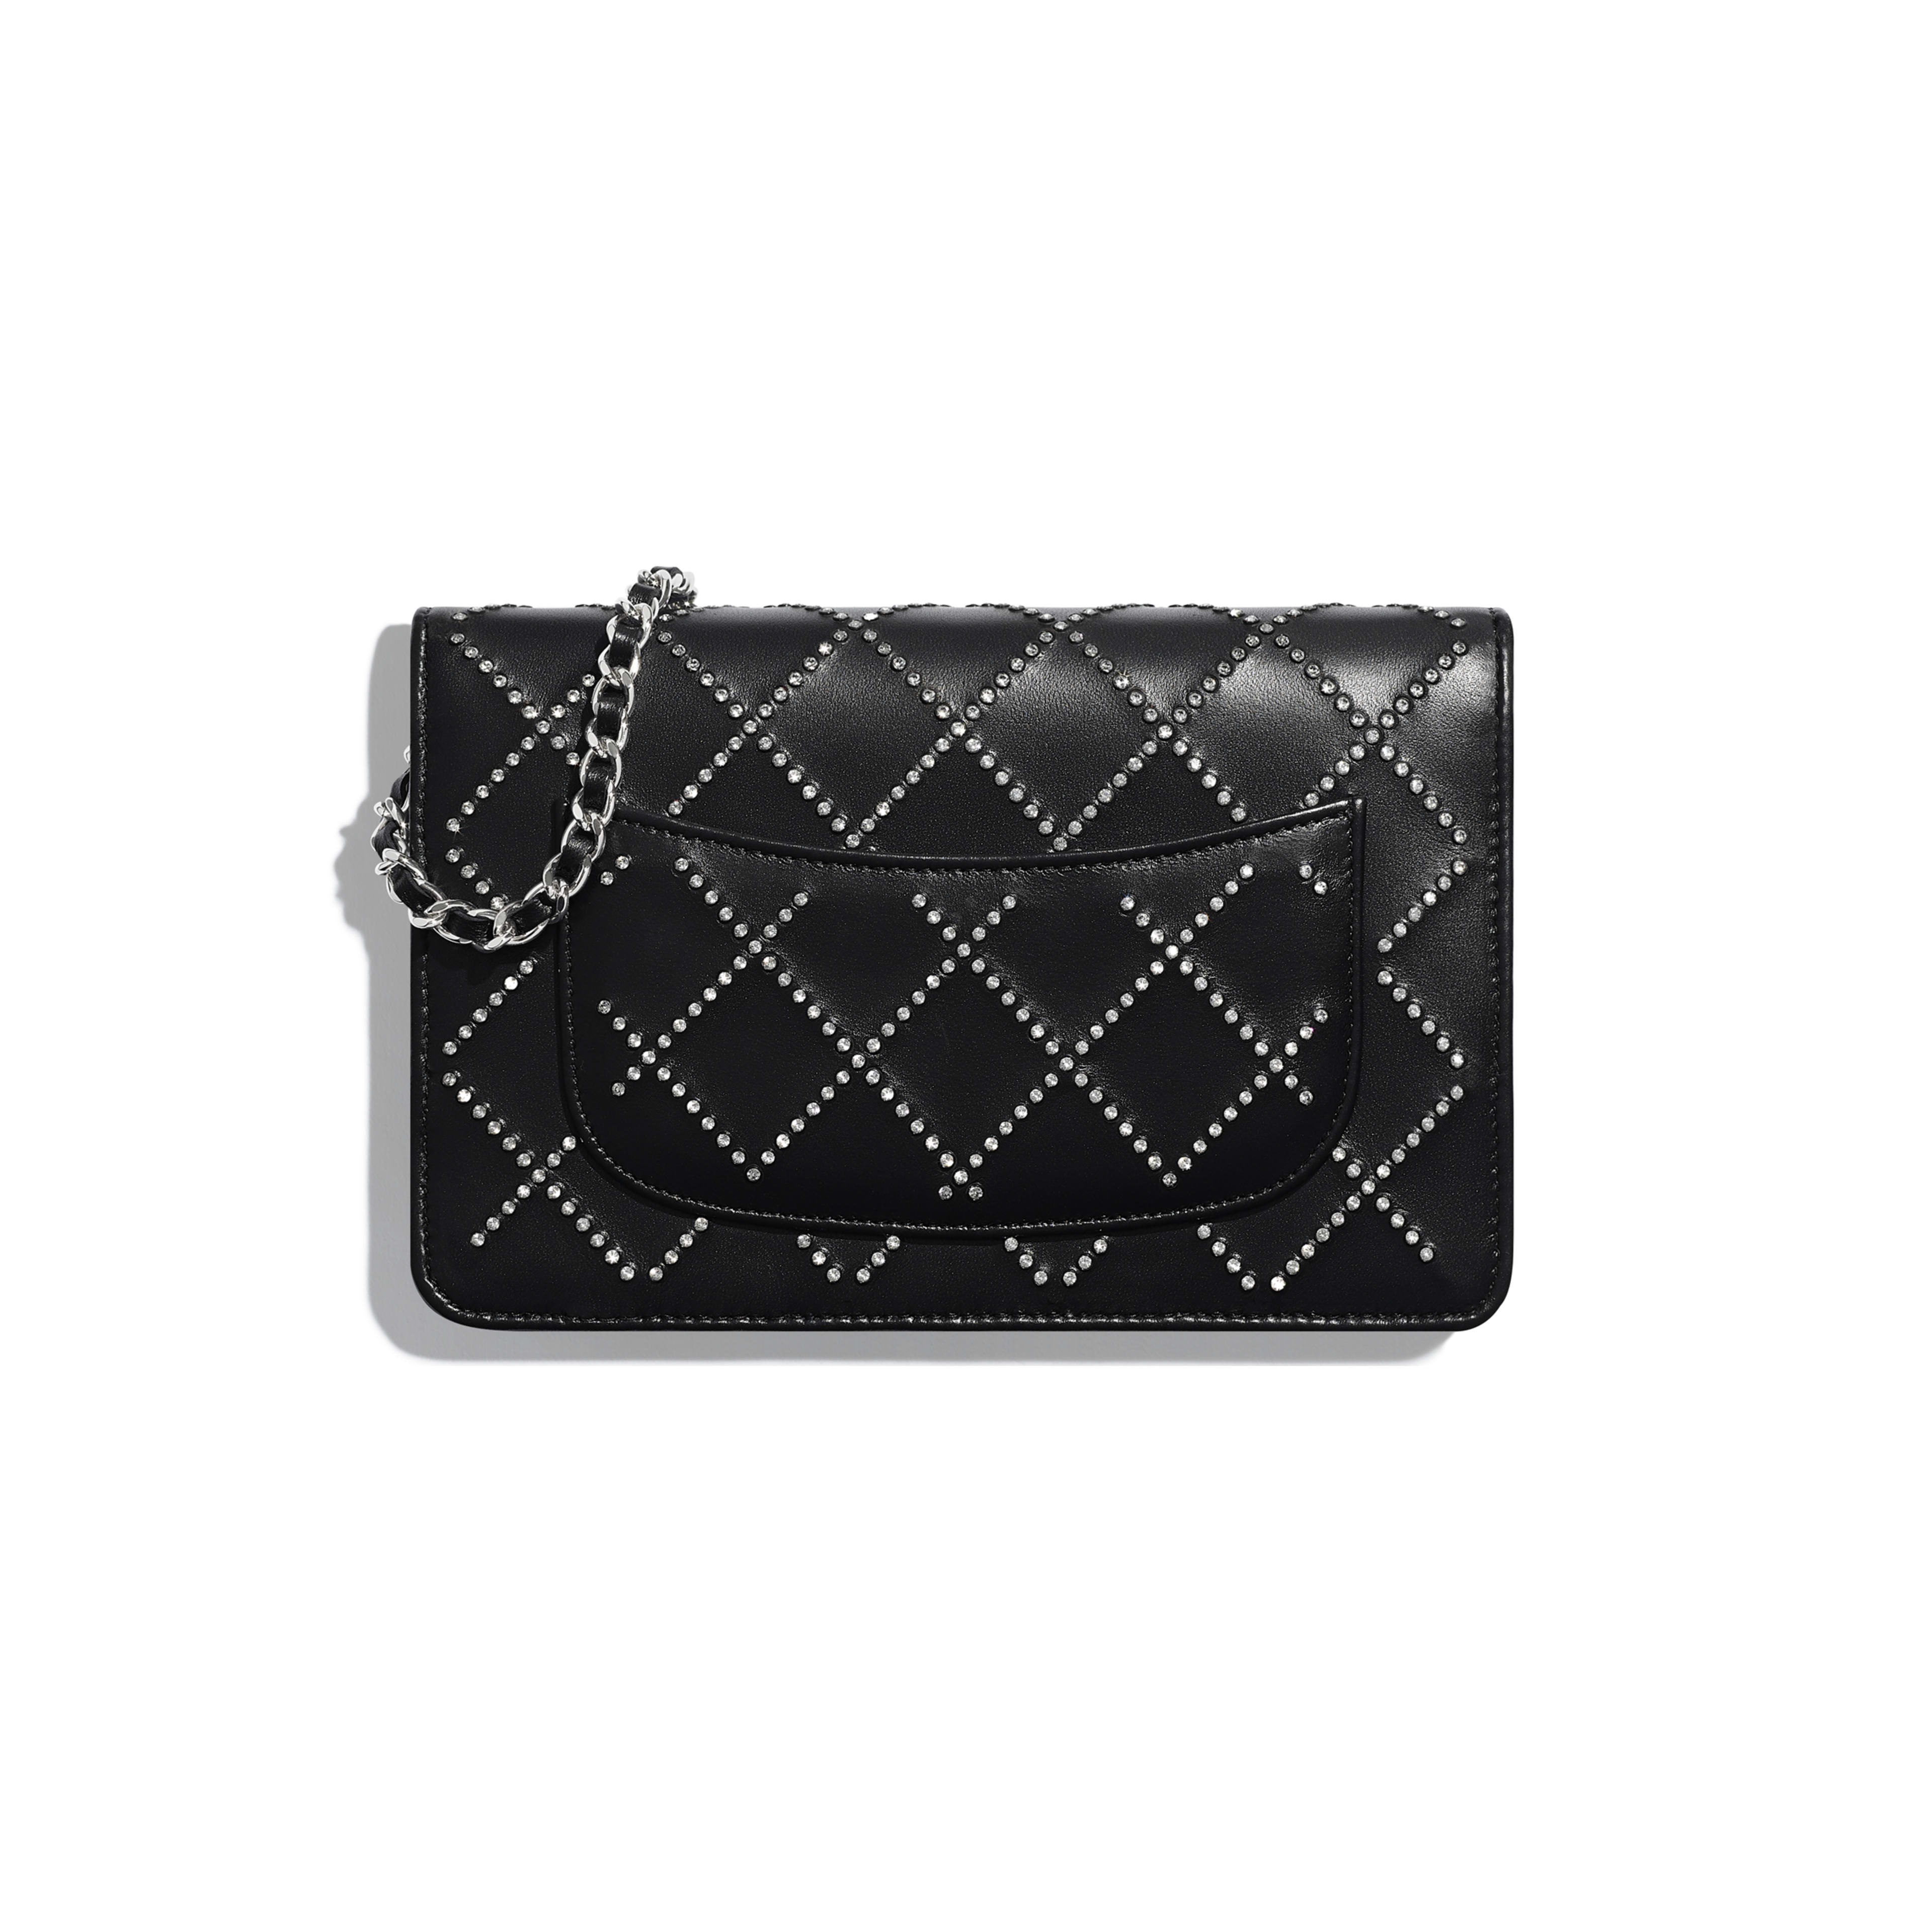 Wallet On Chain - Black - Iridescent Lambskin, Strass & Silver-Tone Metal - Alternative view - see full sized version